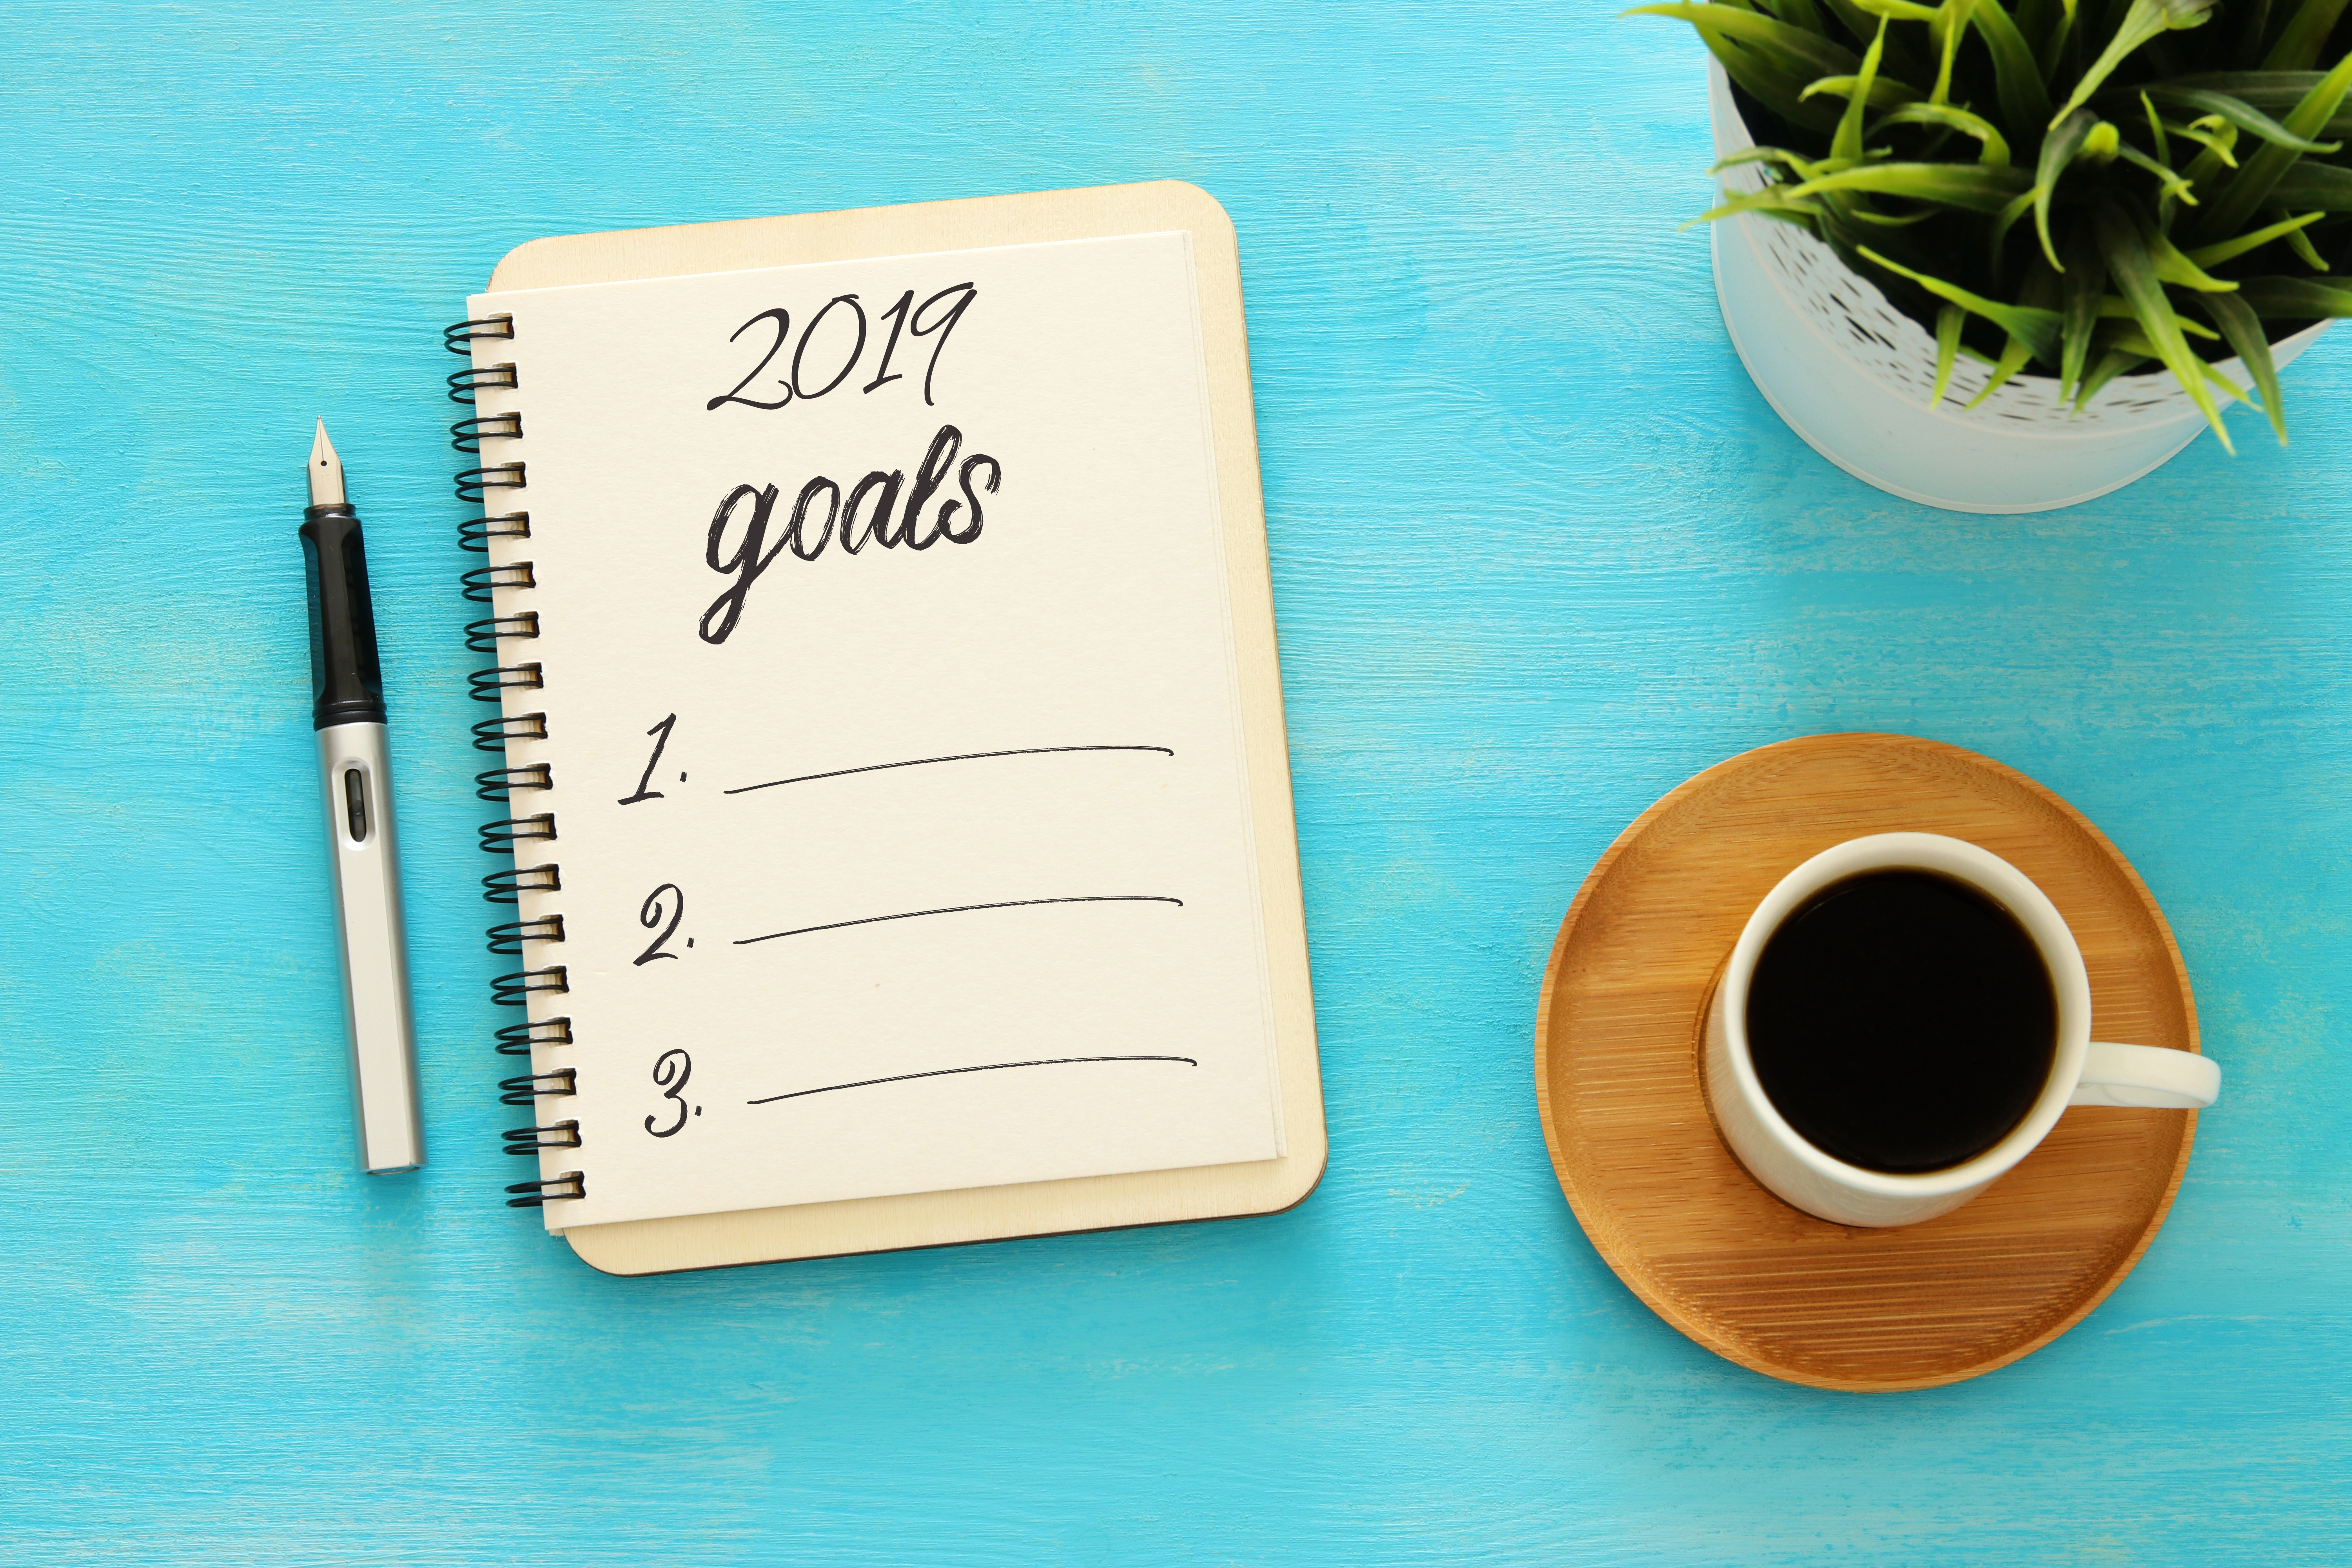 2019 goals list with notebook, cup of coffee over wooden desk